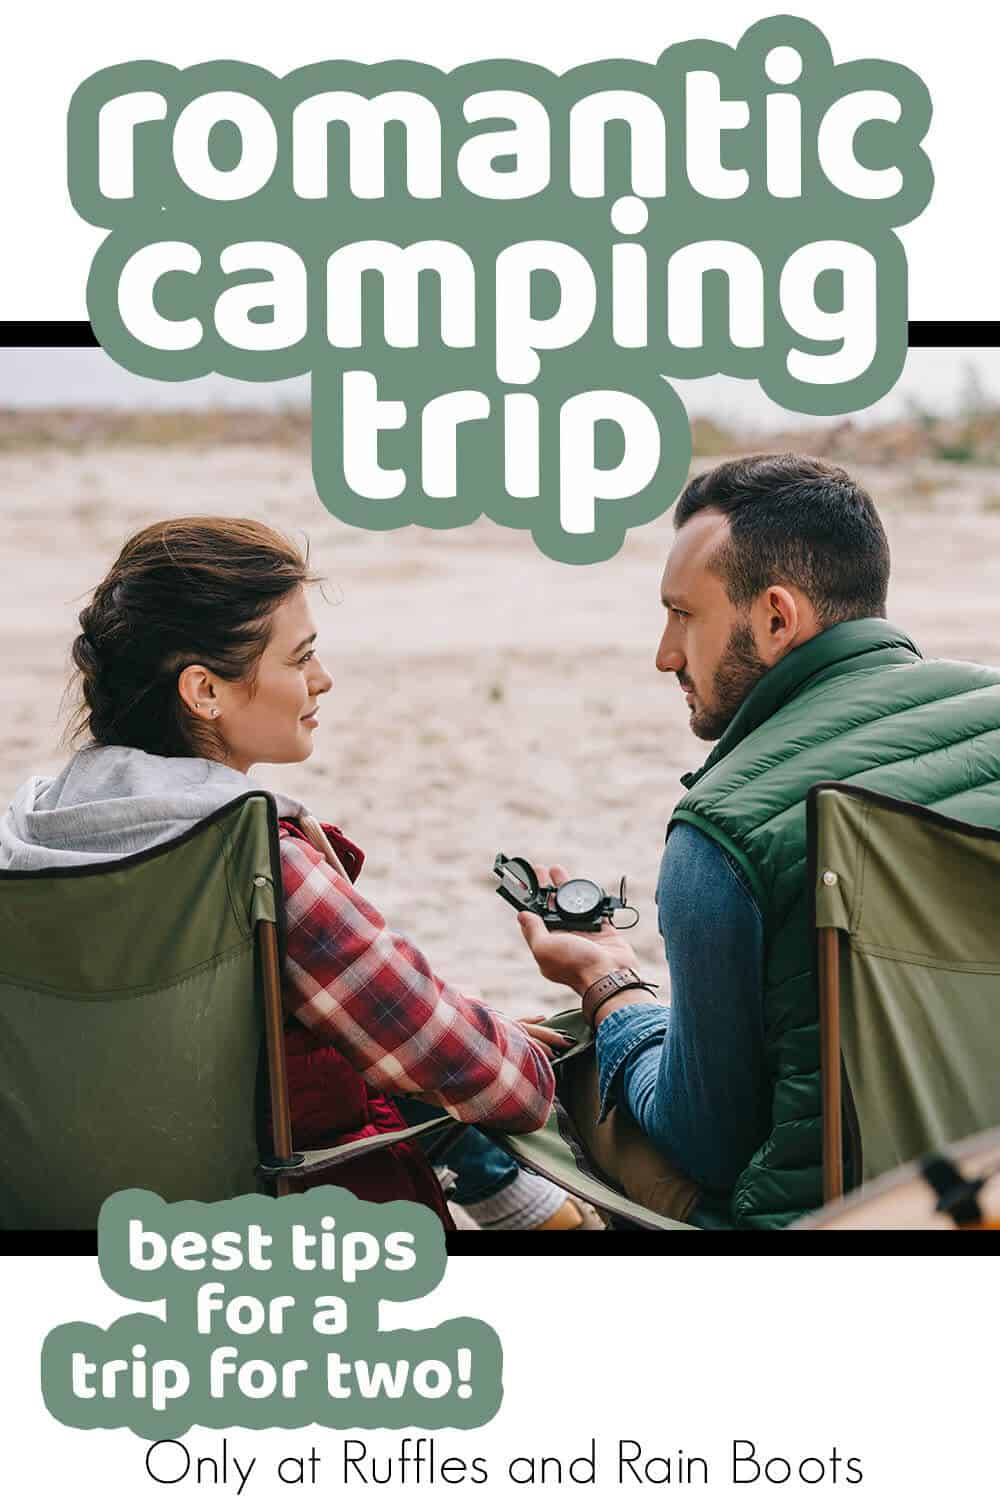 tips for romantic camping date night with text which reads romantic camping trip best tips for a trip for two